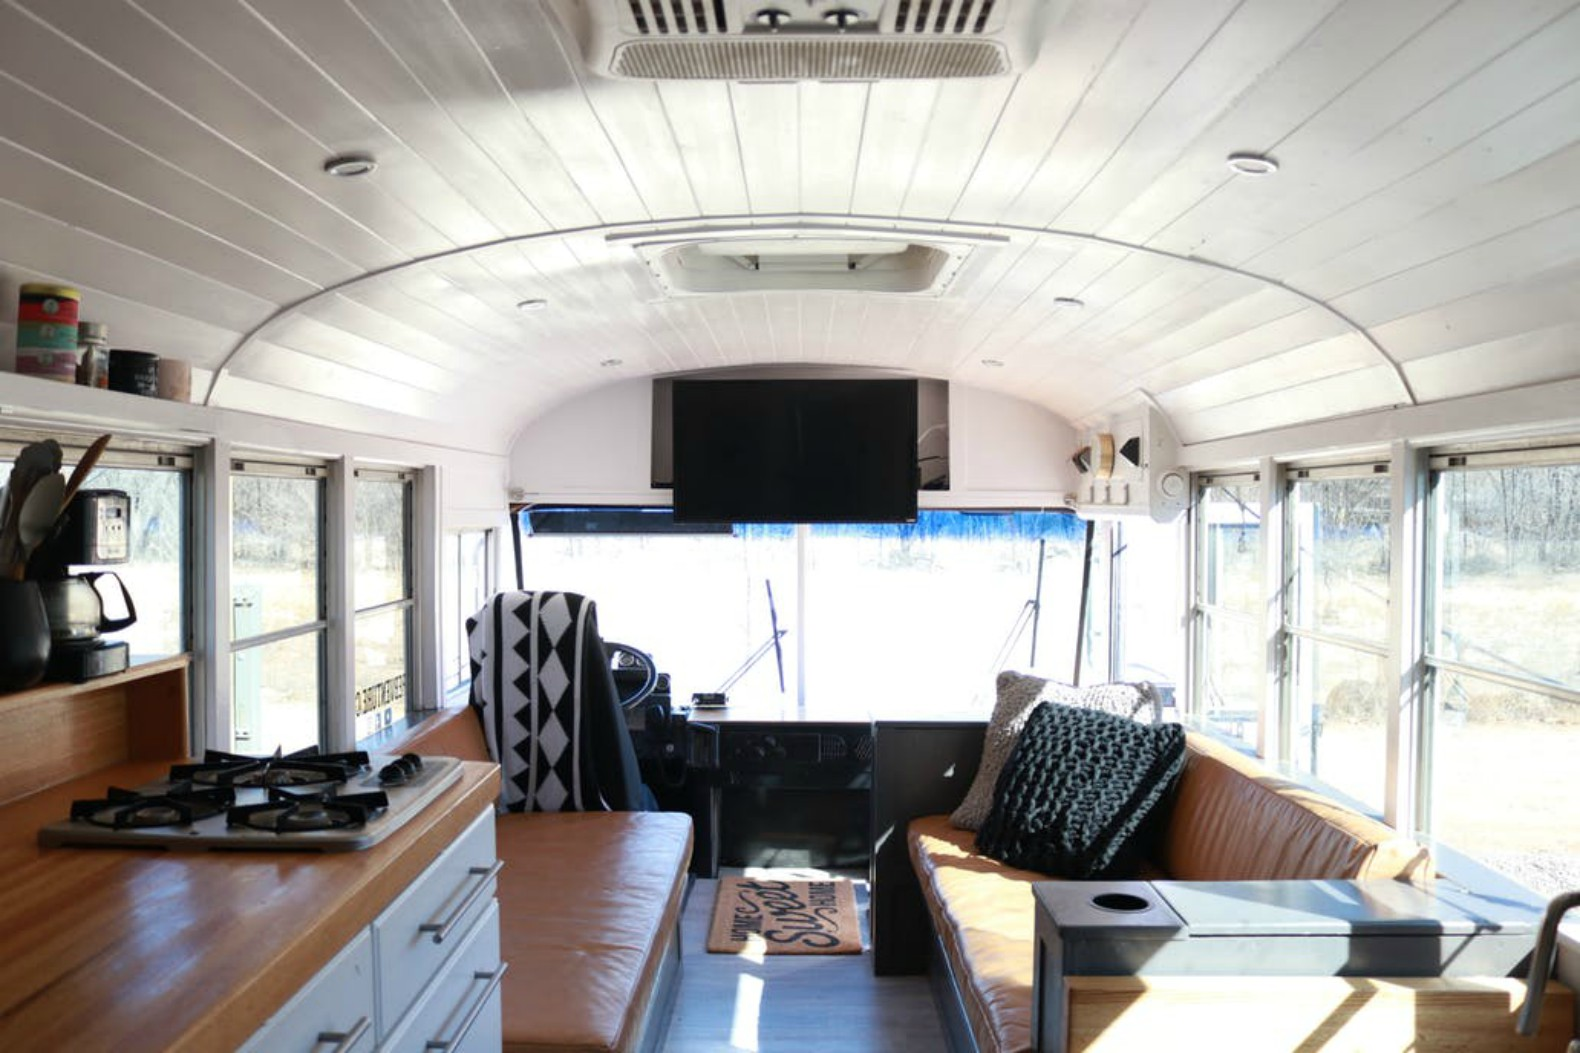 1992 International School Bus gets second life as an adventure-mobile